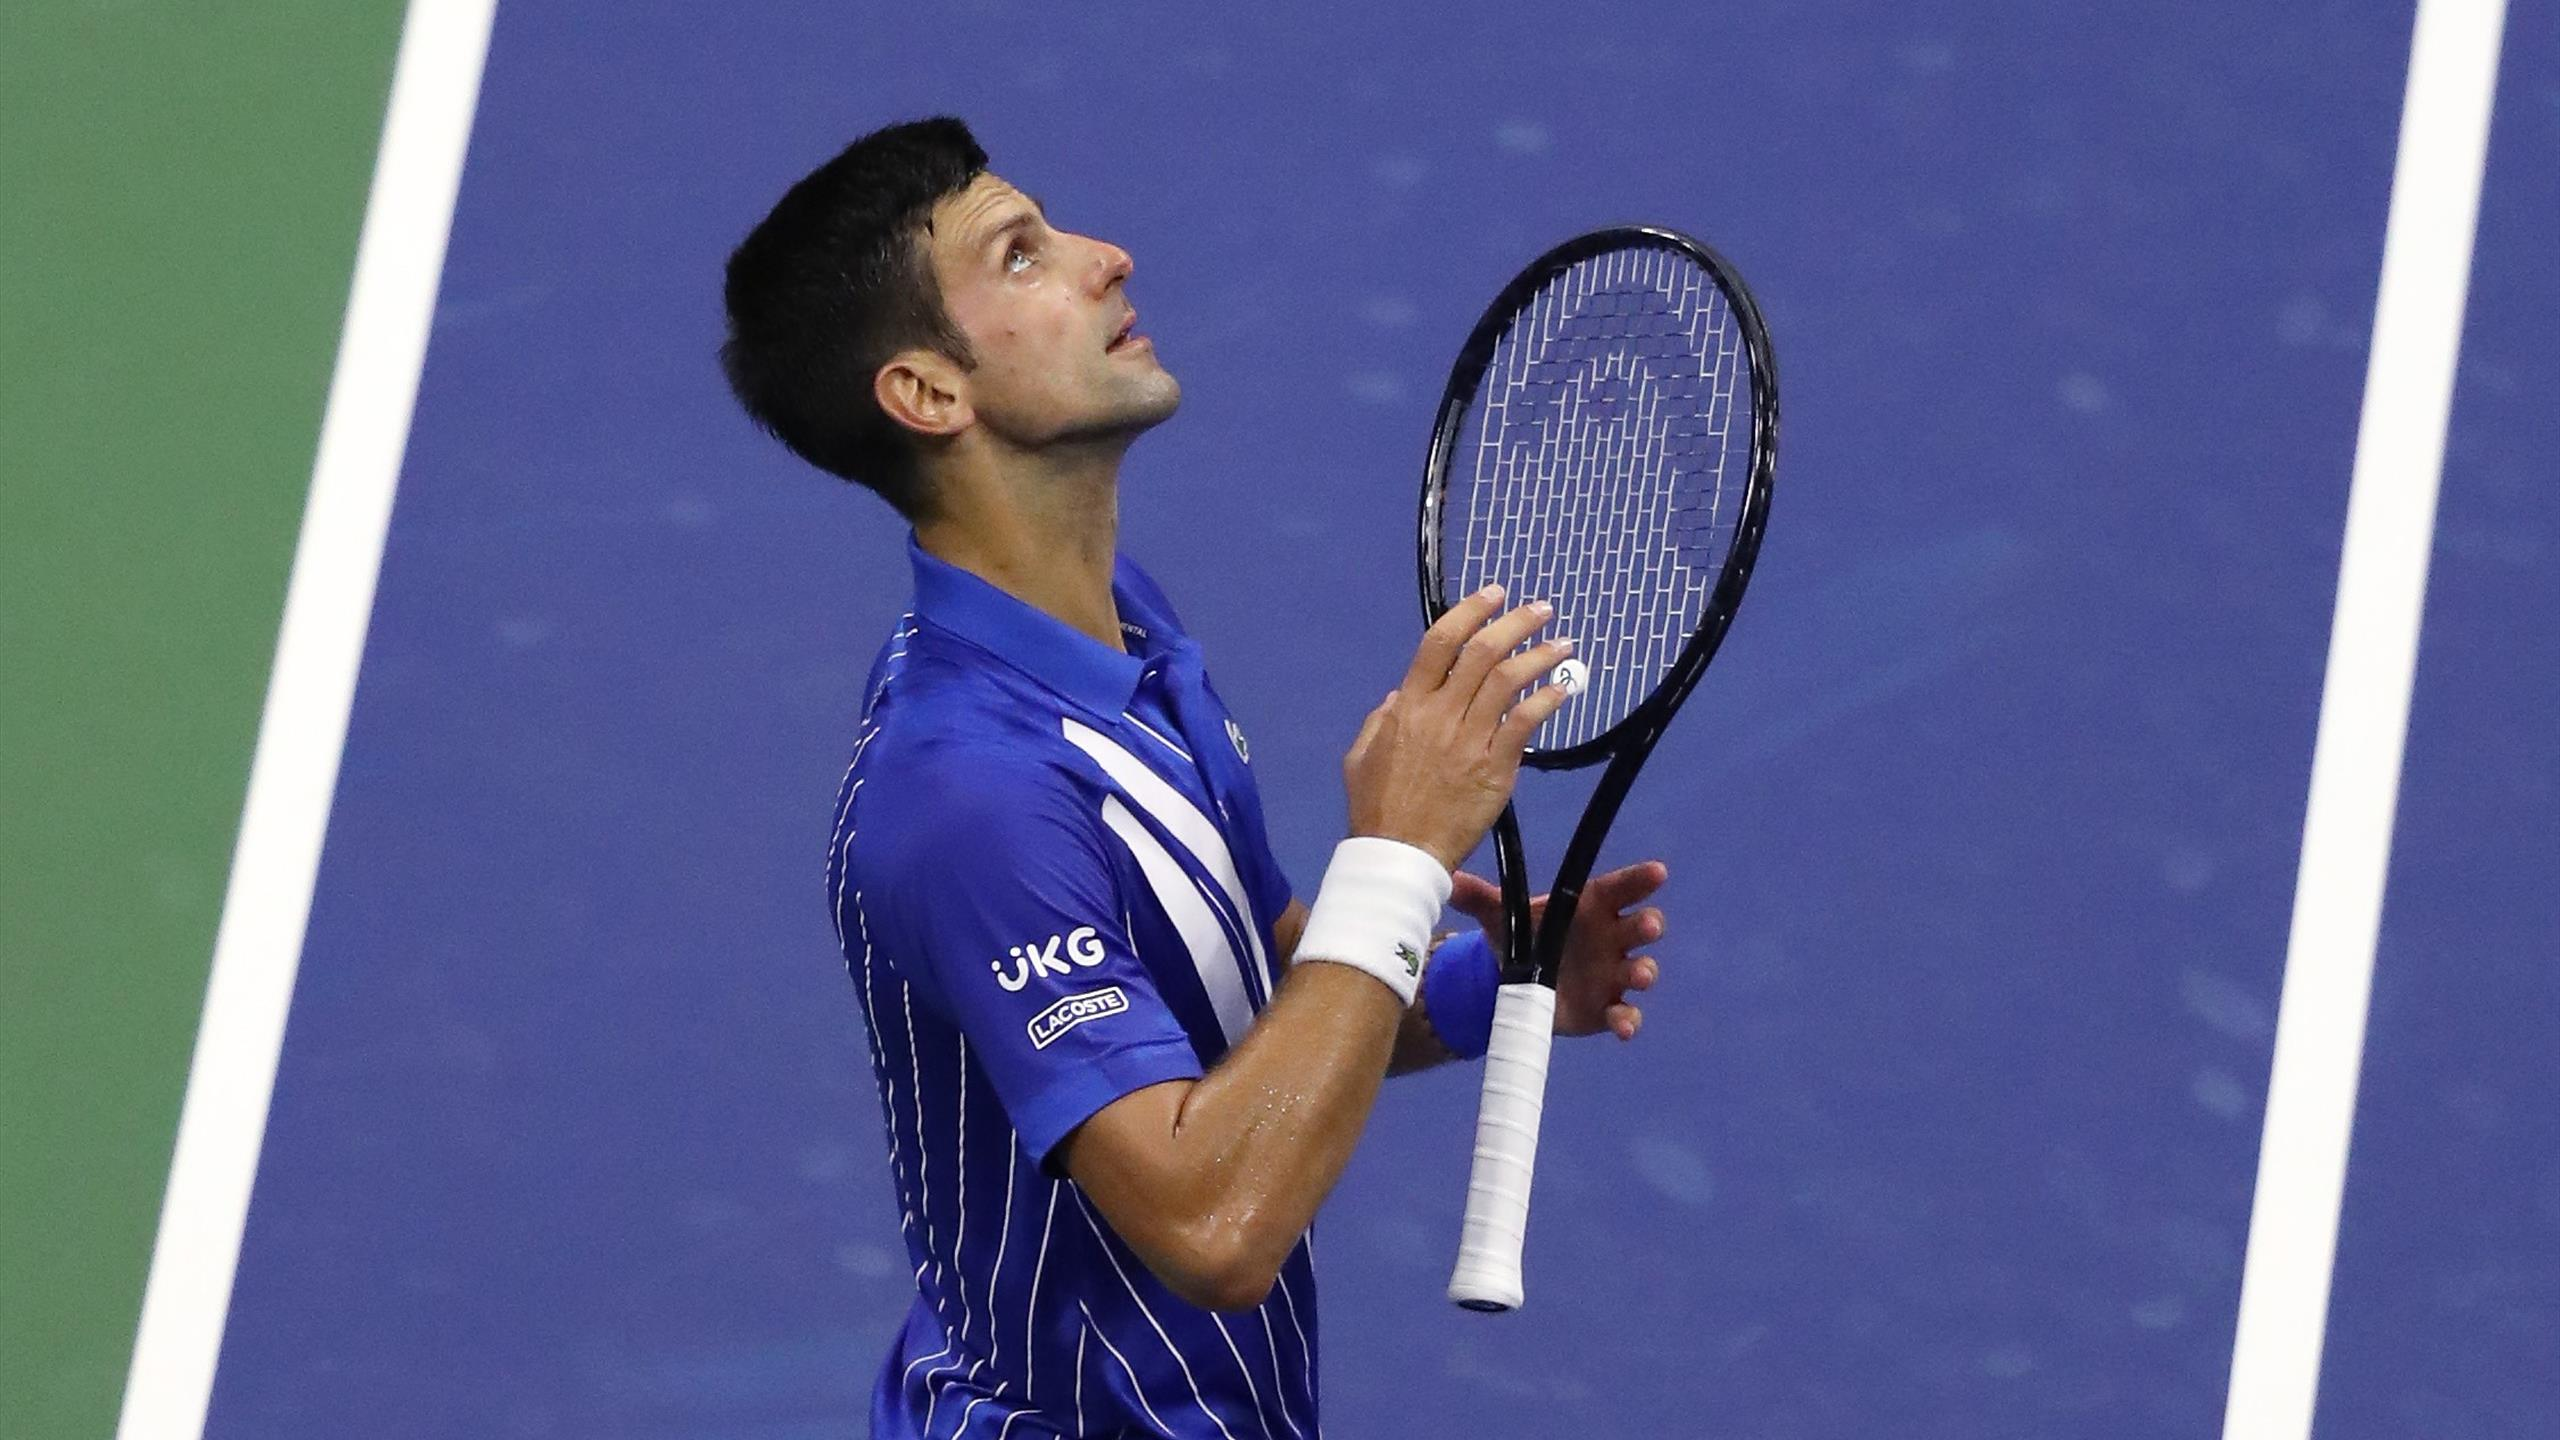 Us Open 2020 Novak Djokovic Cruises Into Second Round With Victory Over Damir Dzumhur Eurosport